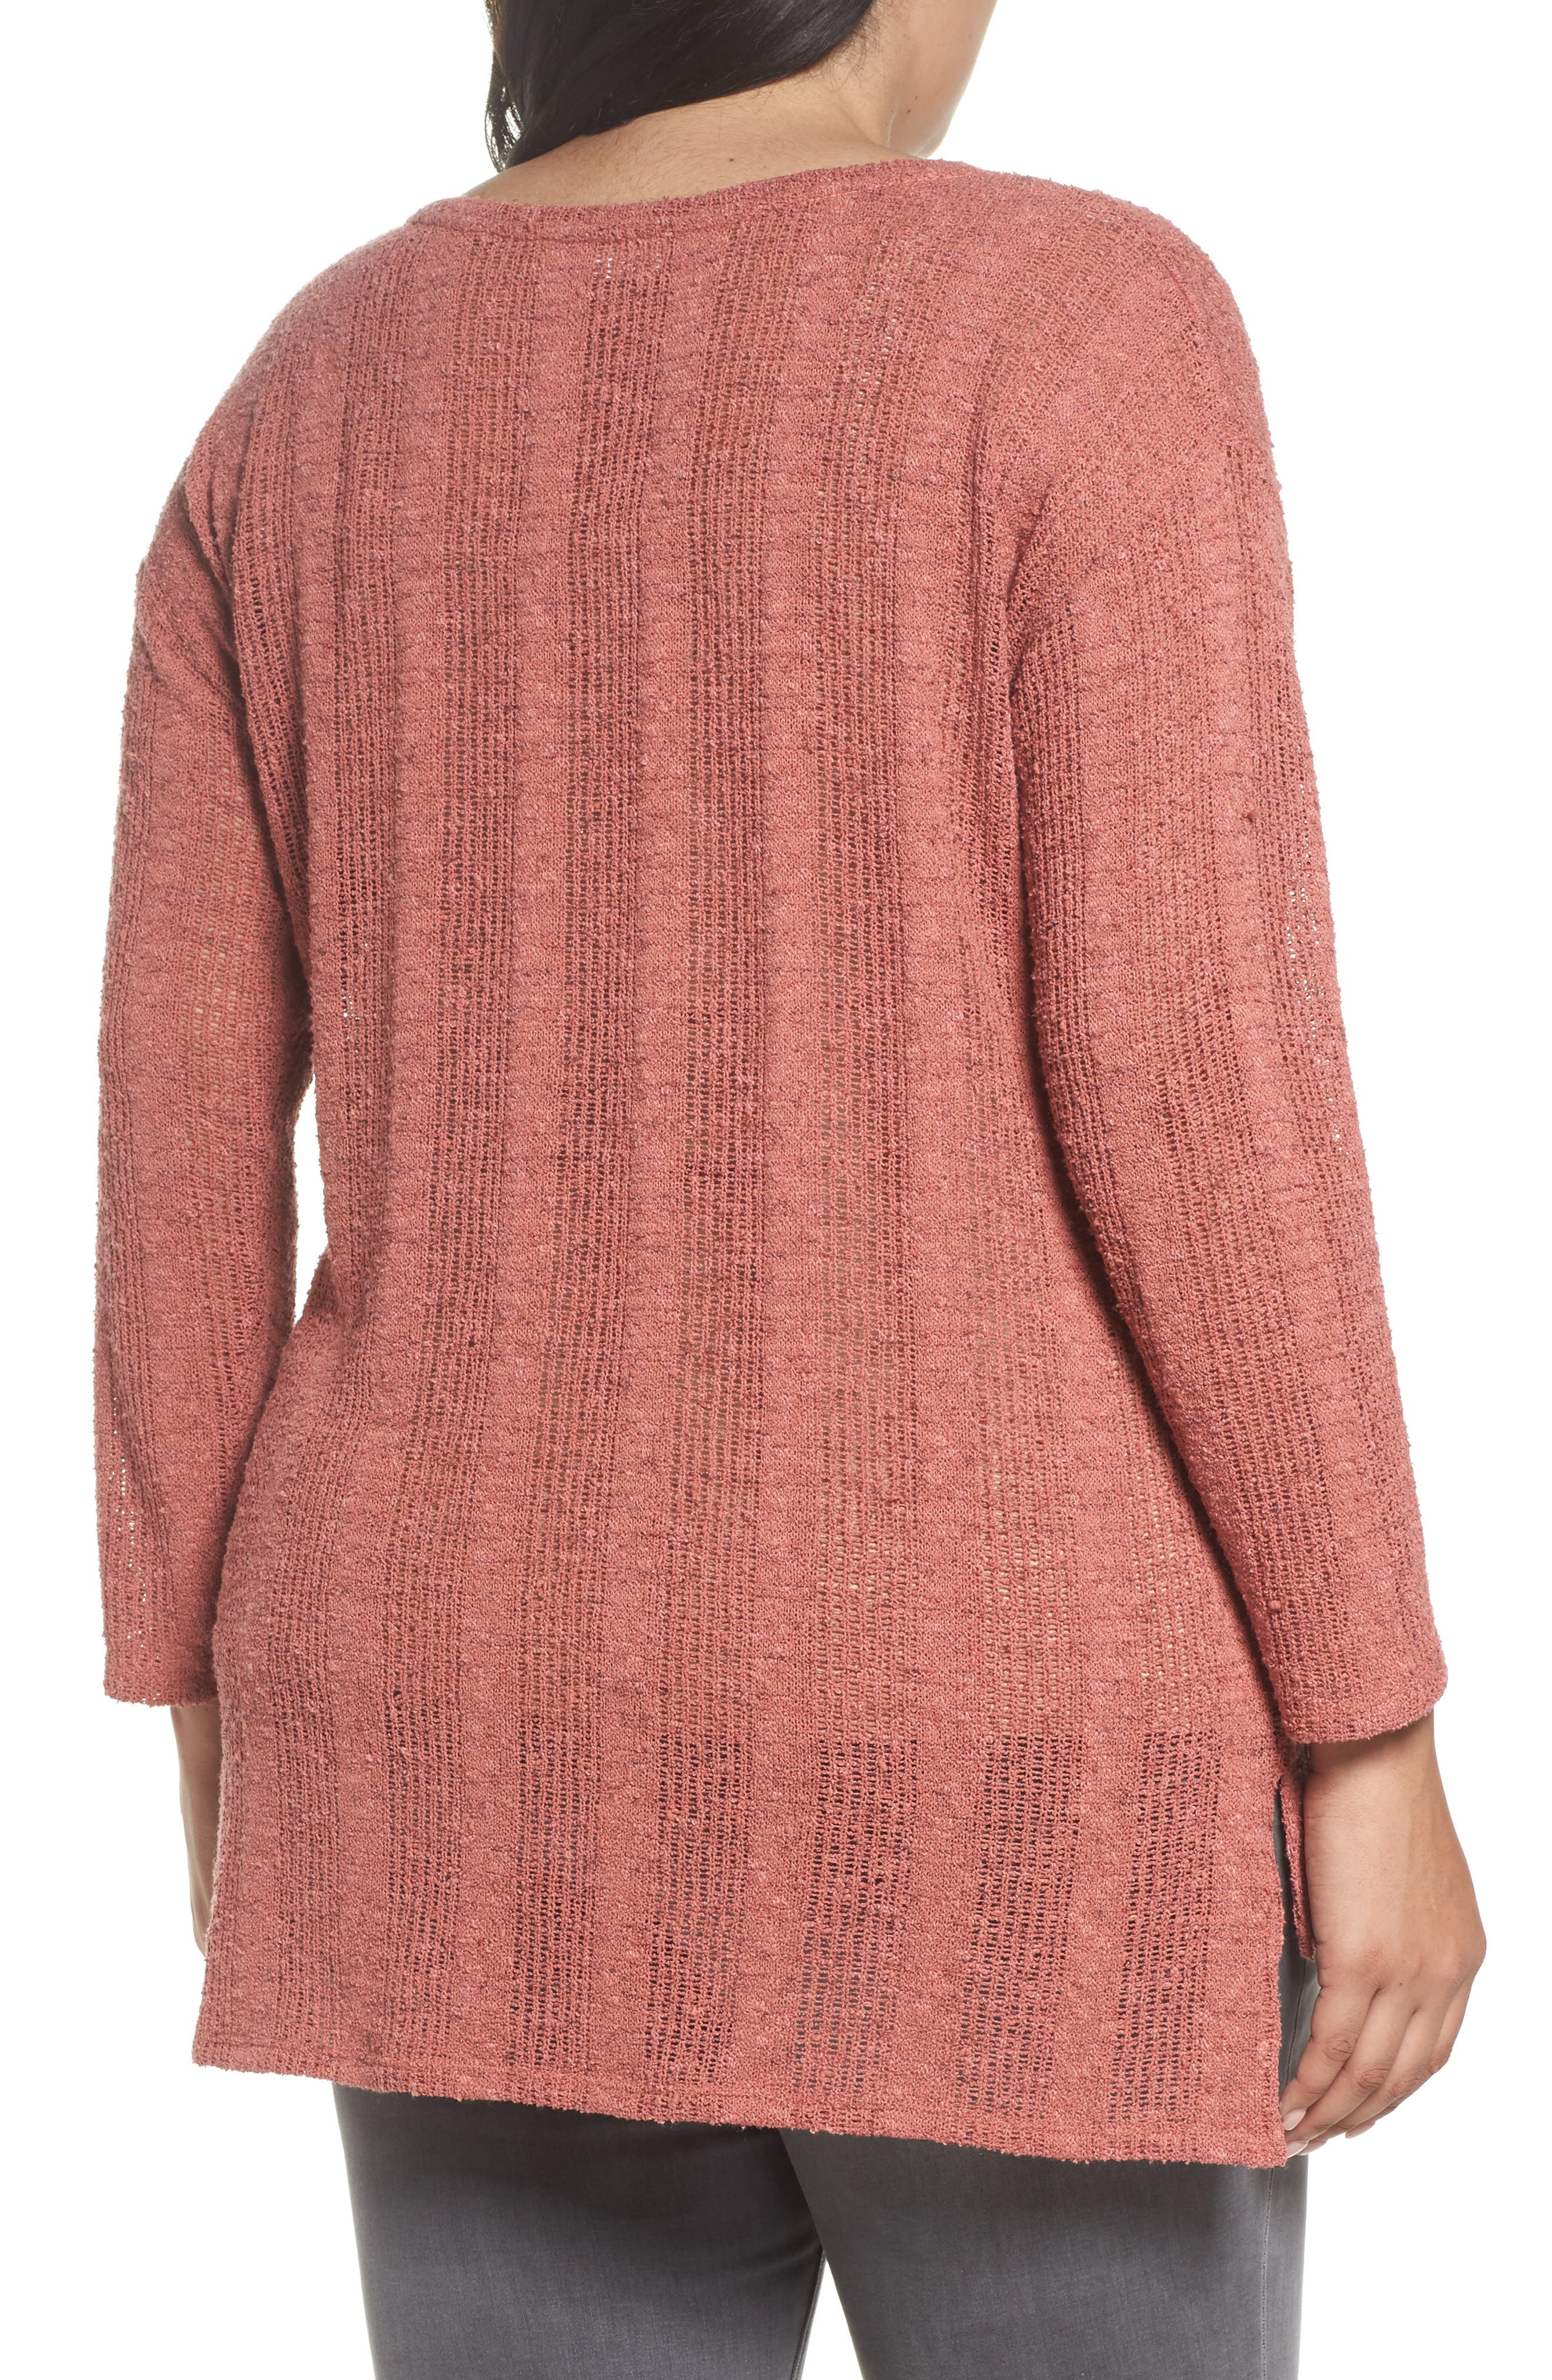 Alternate Image 2  - Two by Vince Camuto Drop Needle Sweater (Plus Size)